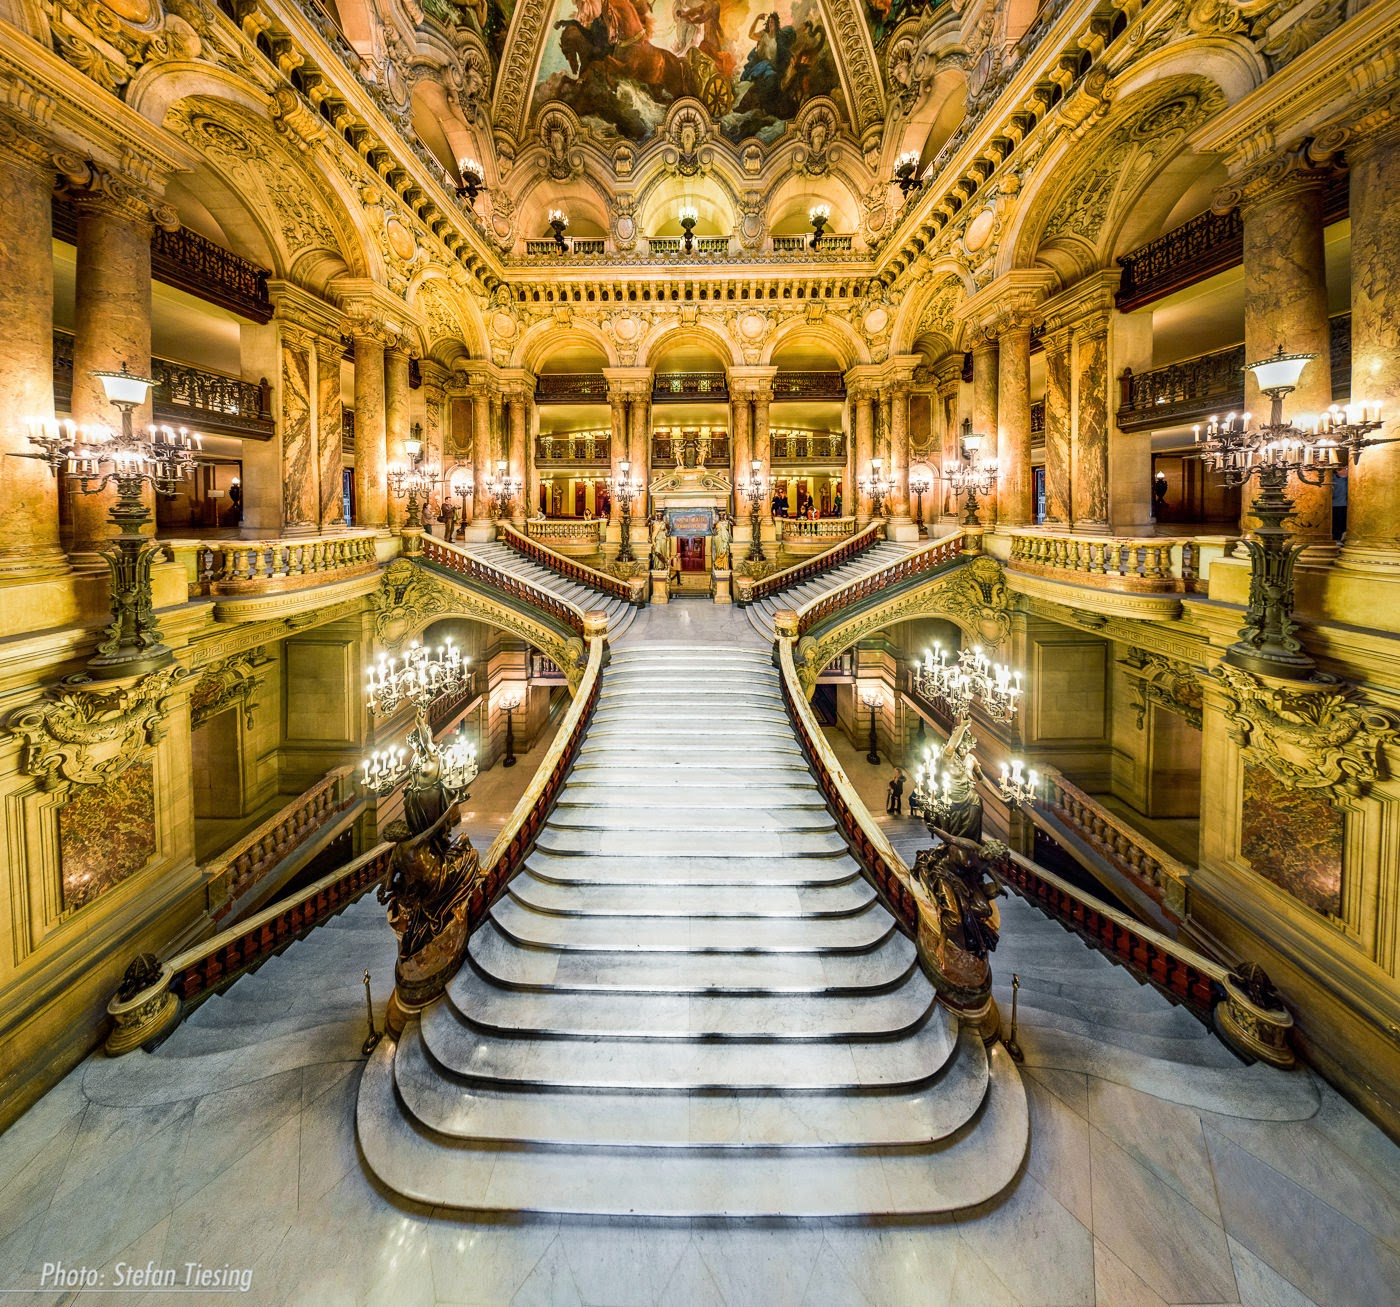 http://angeknipst.tiesing.de/2013/the-large-staircase-welcome-to-opera-garnier-v3/